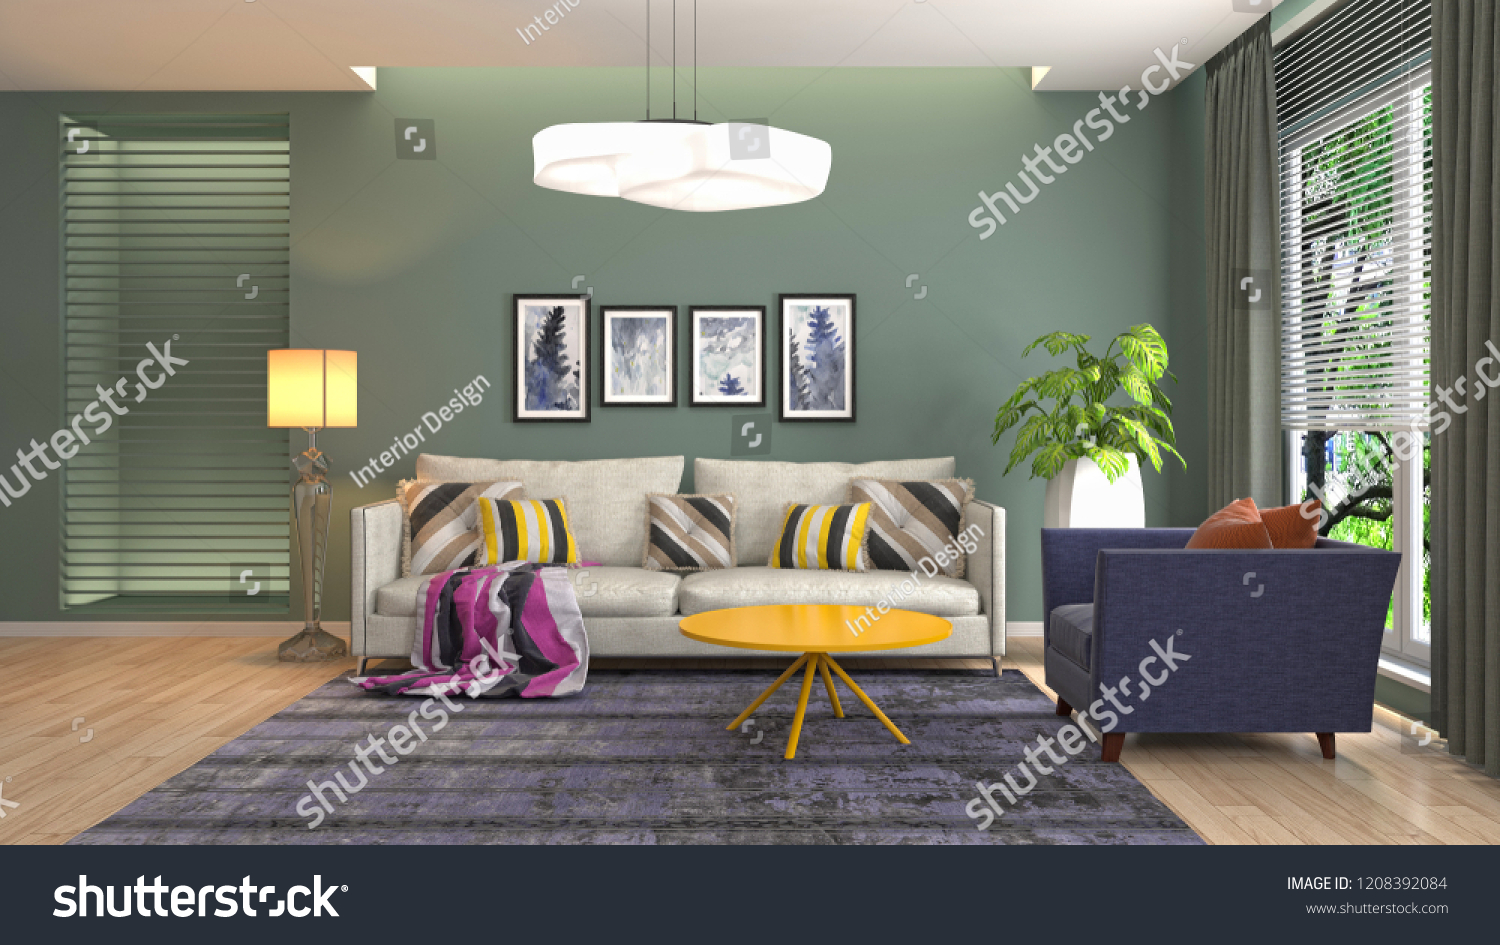 Bettsofa Interio Ch Interior Living Room 3 D Illustration Stock Illustration 1208392084